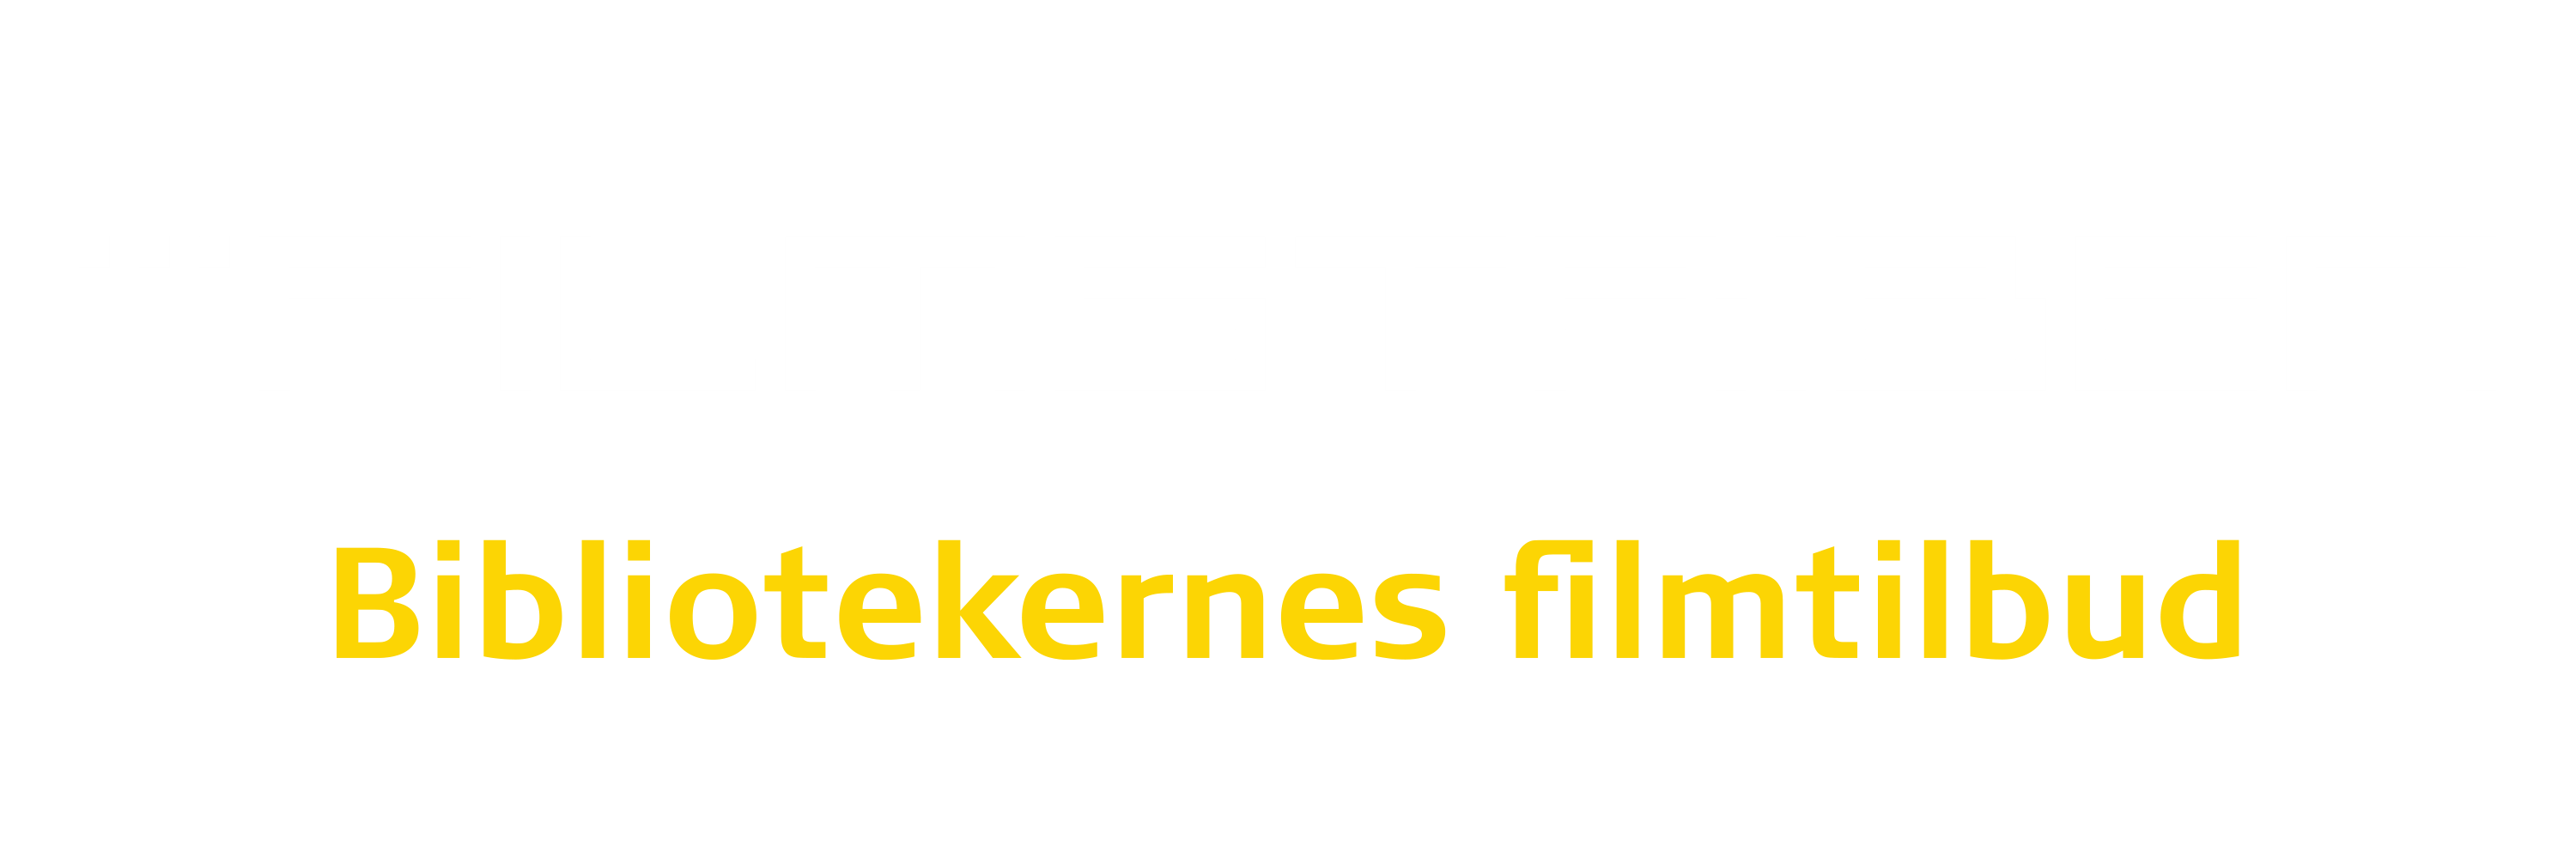 Filmstriben logo_transparent_3000_1000_png